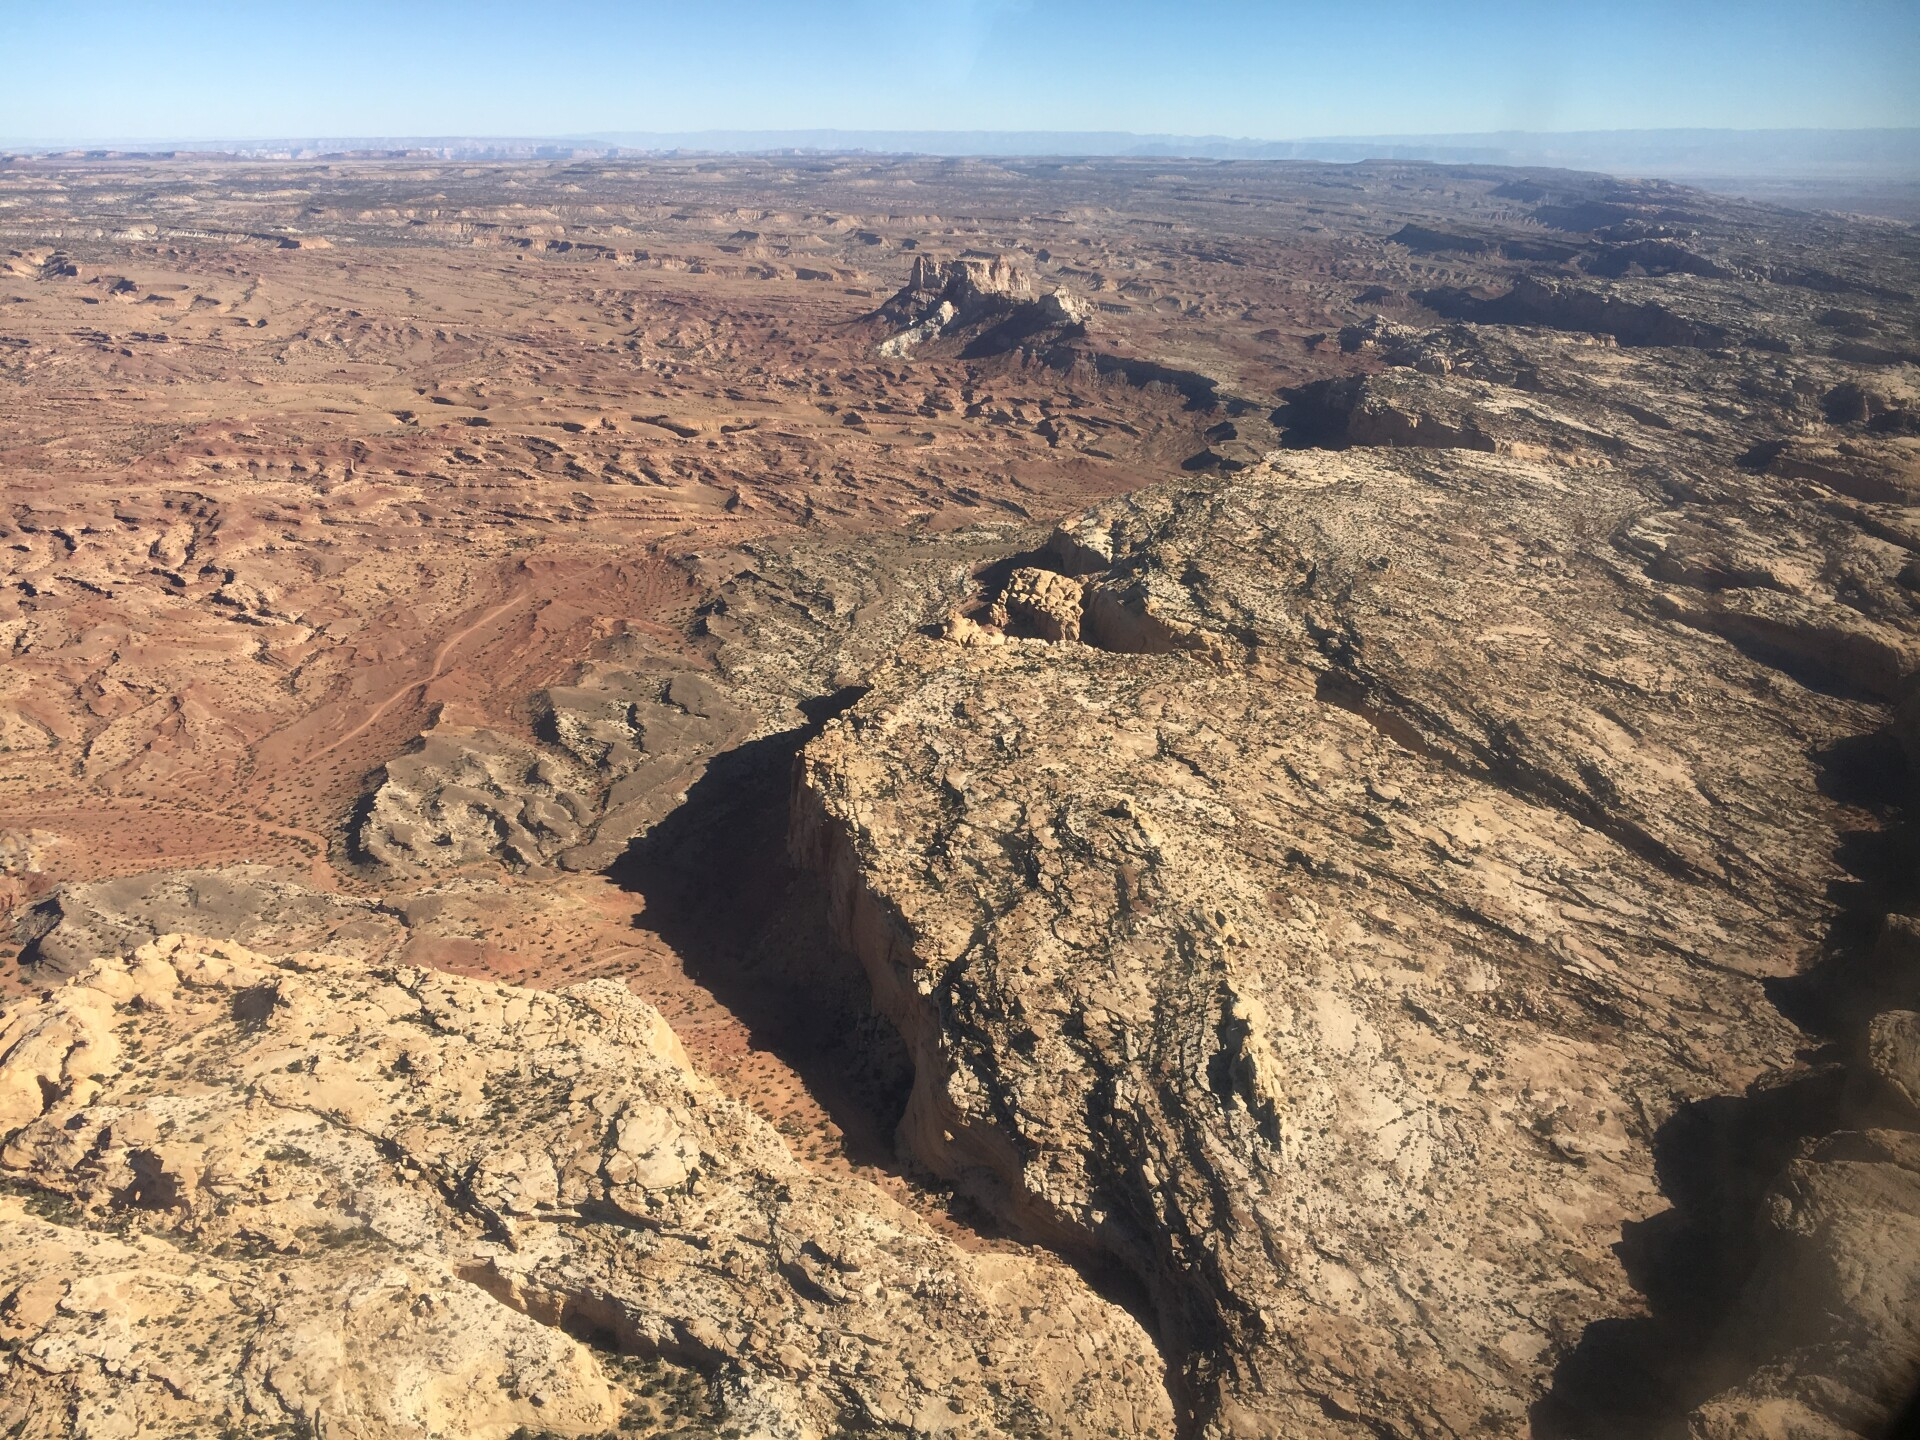 Photos: Congress to consider bill offering protections to San Rafael Swell area, but critics say a lot is left out